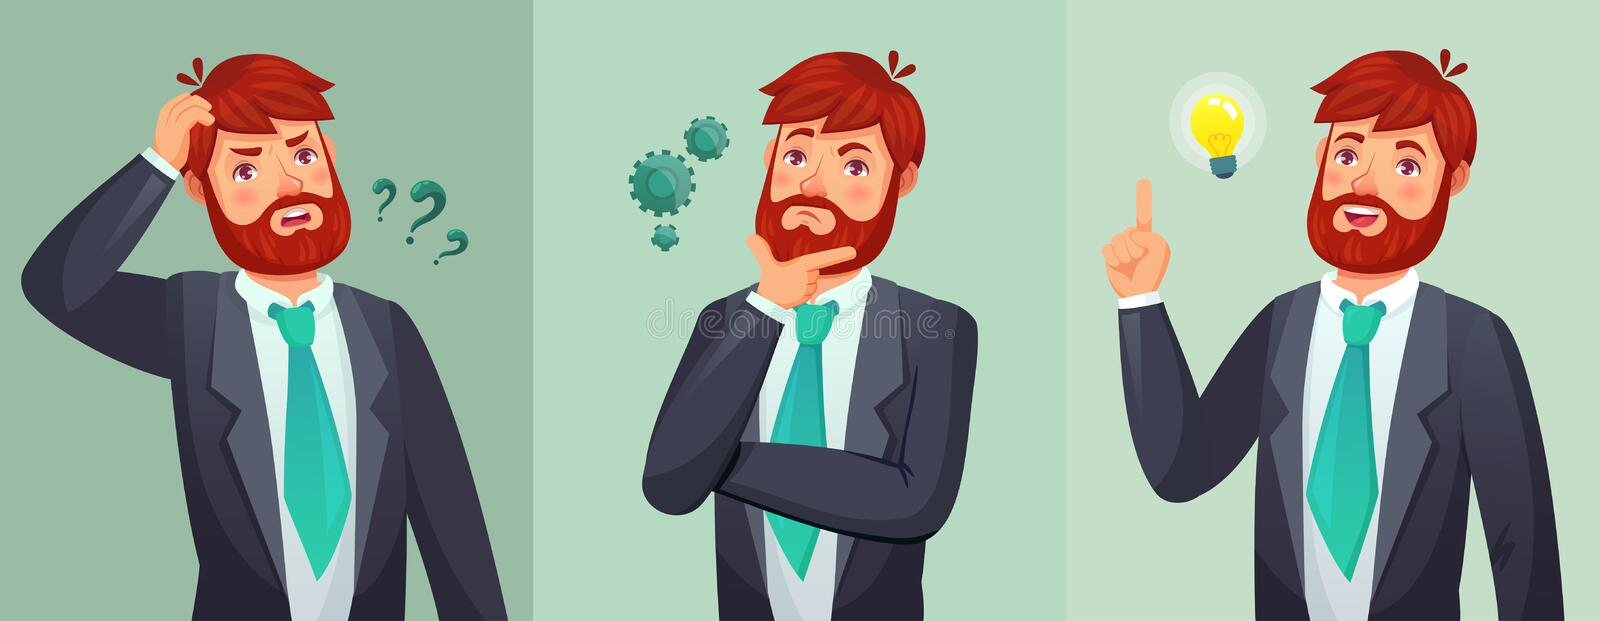 Thoughtful man. Male ask questions, doubt or confused and found question answer. Thinking serious decision cartoon. Thoughtful man. Male ask questions, doubt or royalty free illustration